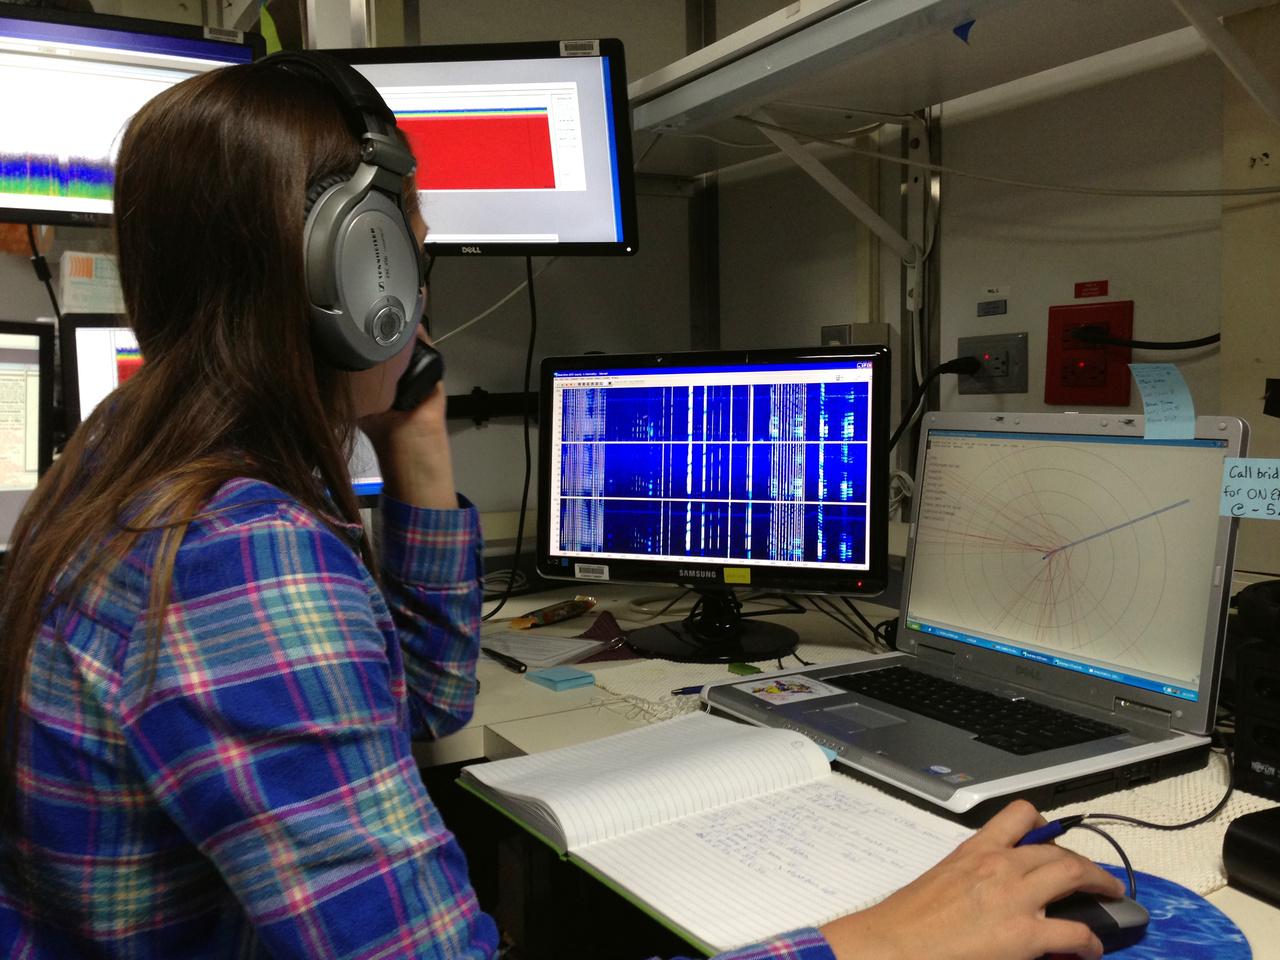 When appropriate, the acoustics team communicates with the visual observers to locate the acoustically-detected cetaceans.